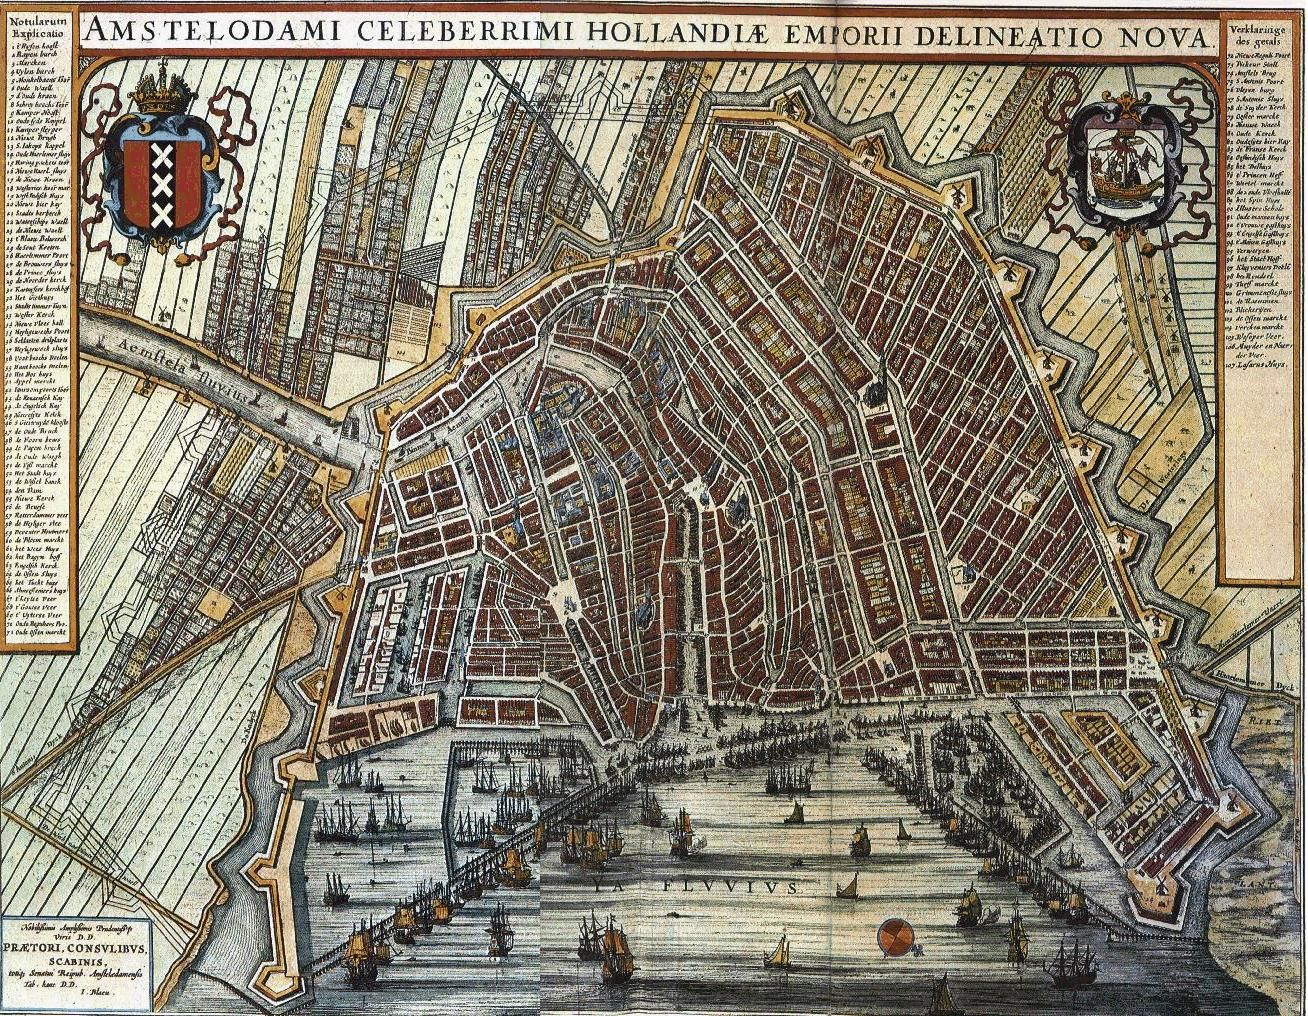 Amsterdam 1649 Bleau of the Netherlands 43